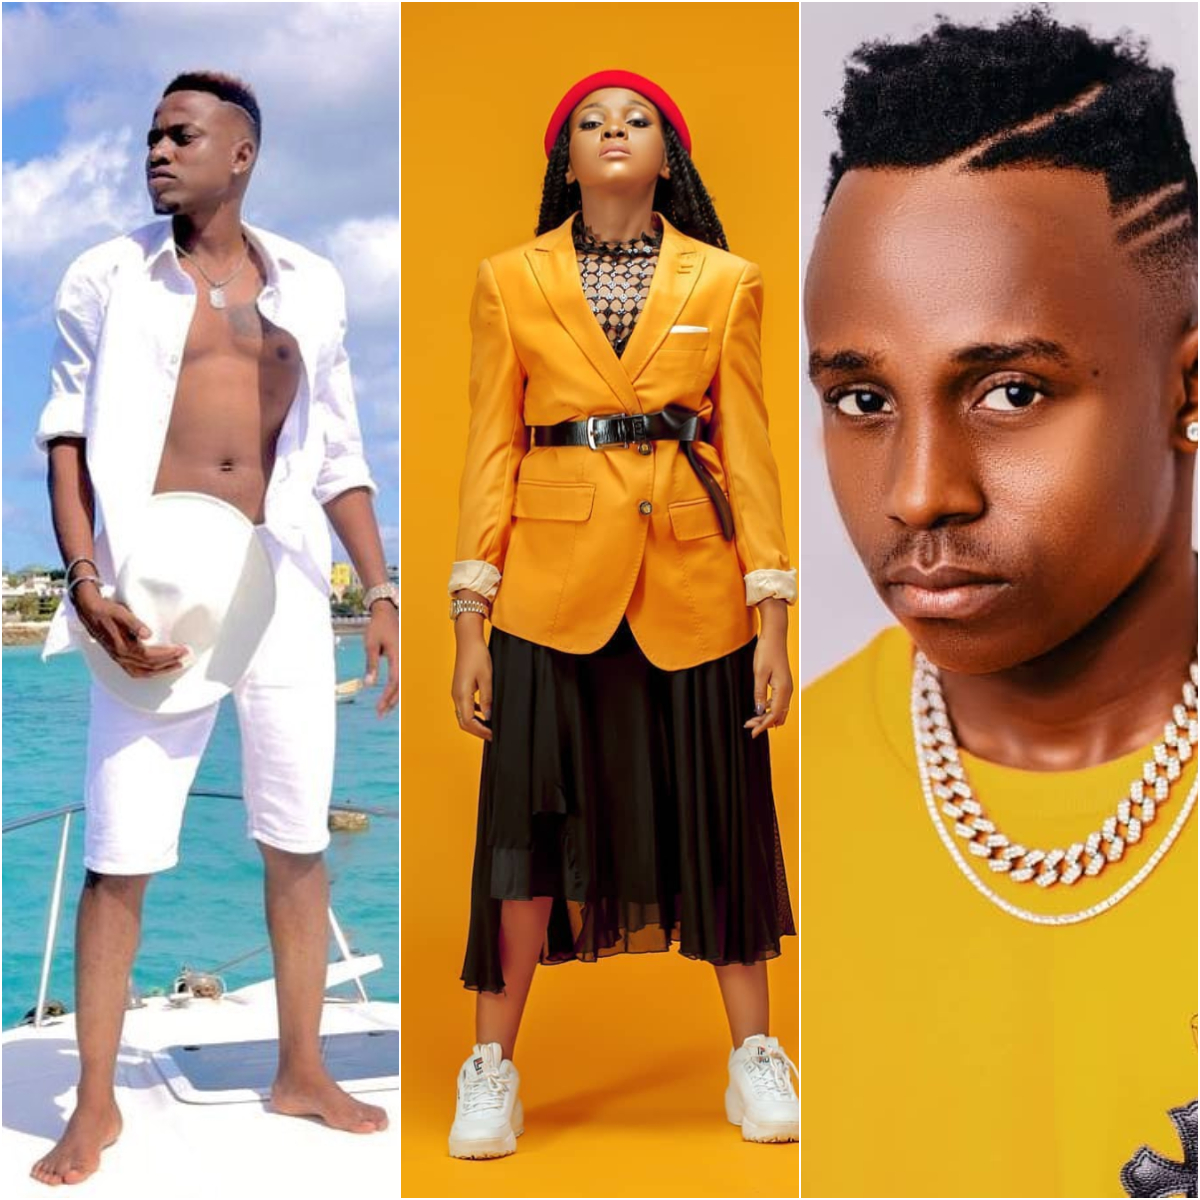 Ibraah Vs Tommy Flavour Vs Zuchu: Who is the best with their music so far?